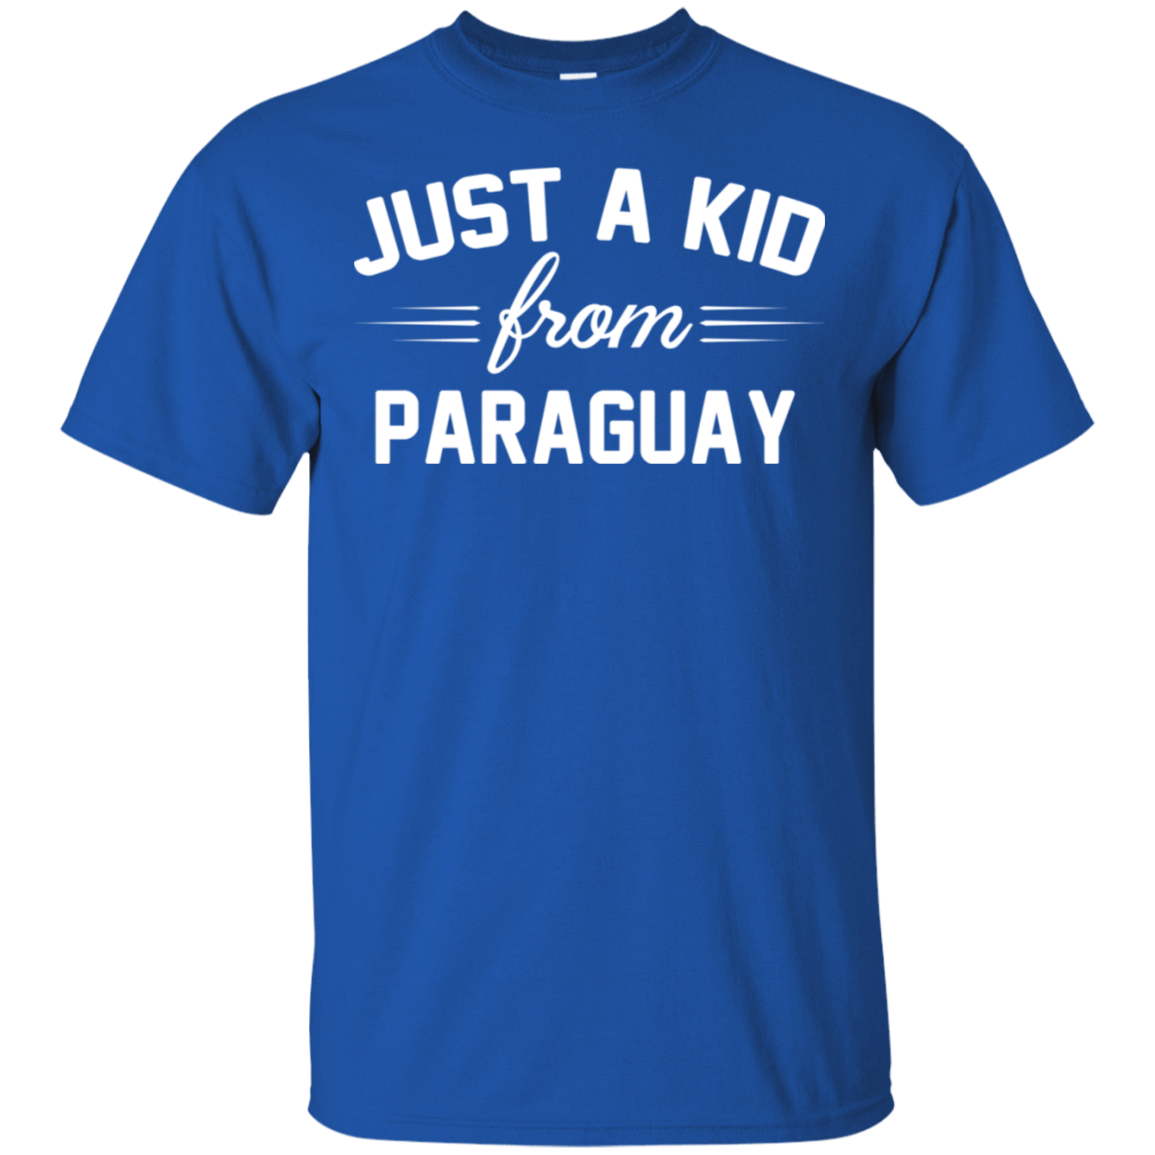 Just a Kid Store | Paraguay T-Shirts, Hoodie, Tank 22-110-72091578-249 - Tee Ript